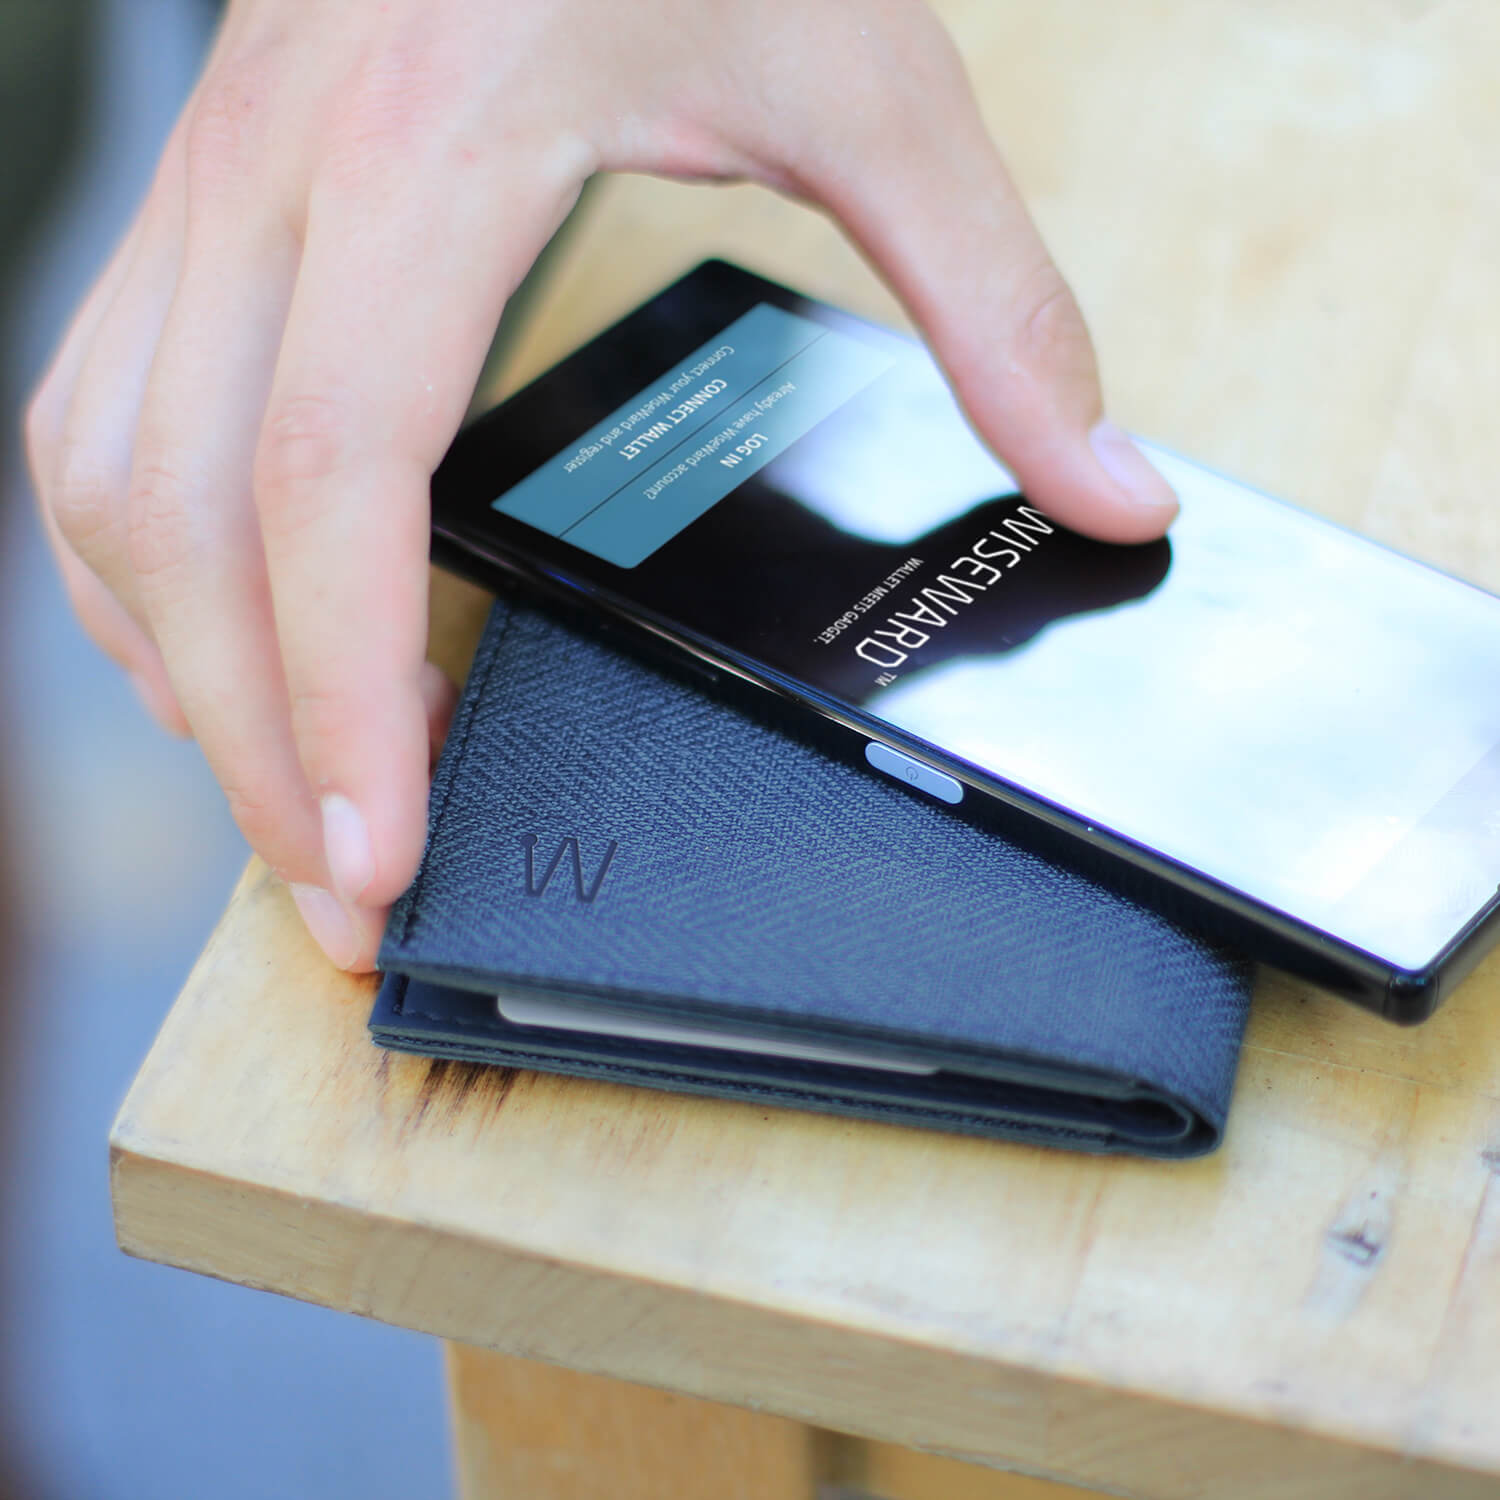 Hand touching a smart wallet and smartphone